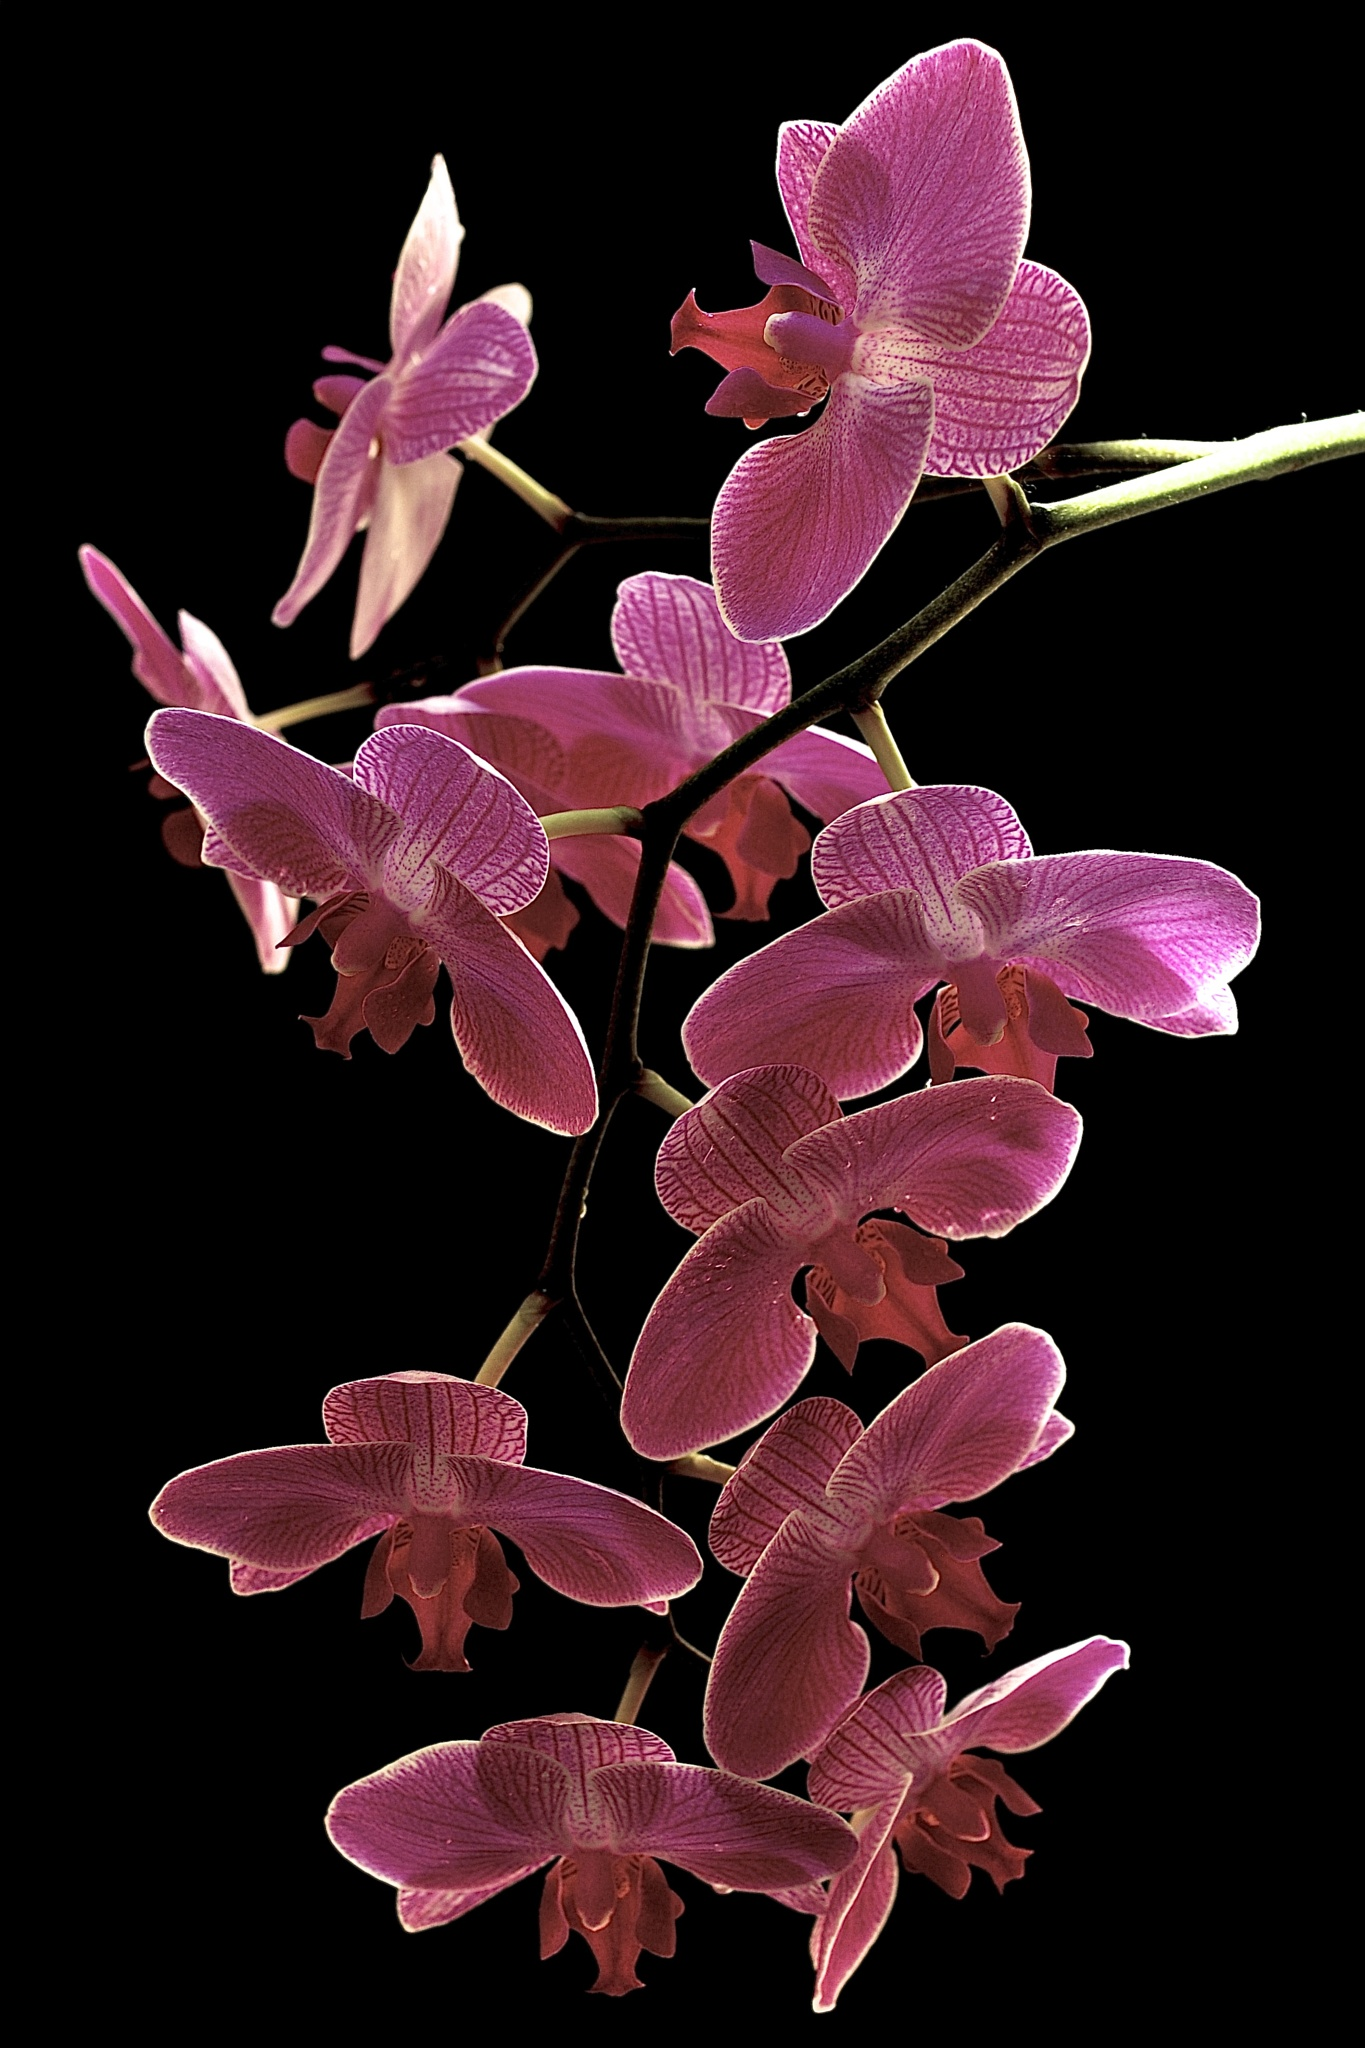 Orchids in Flight by Russ Duncan